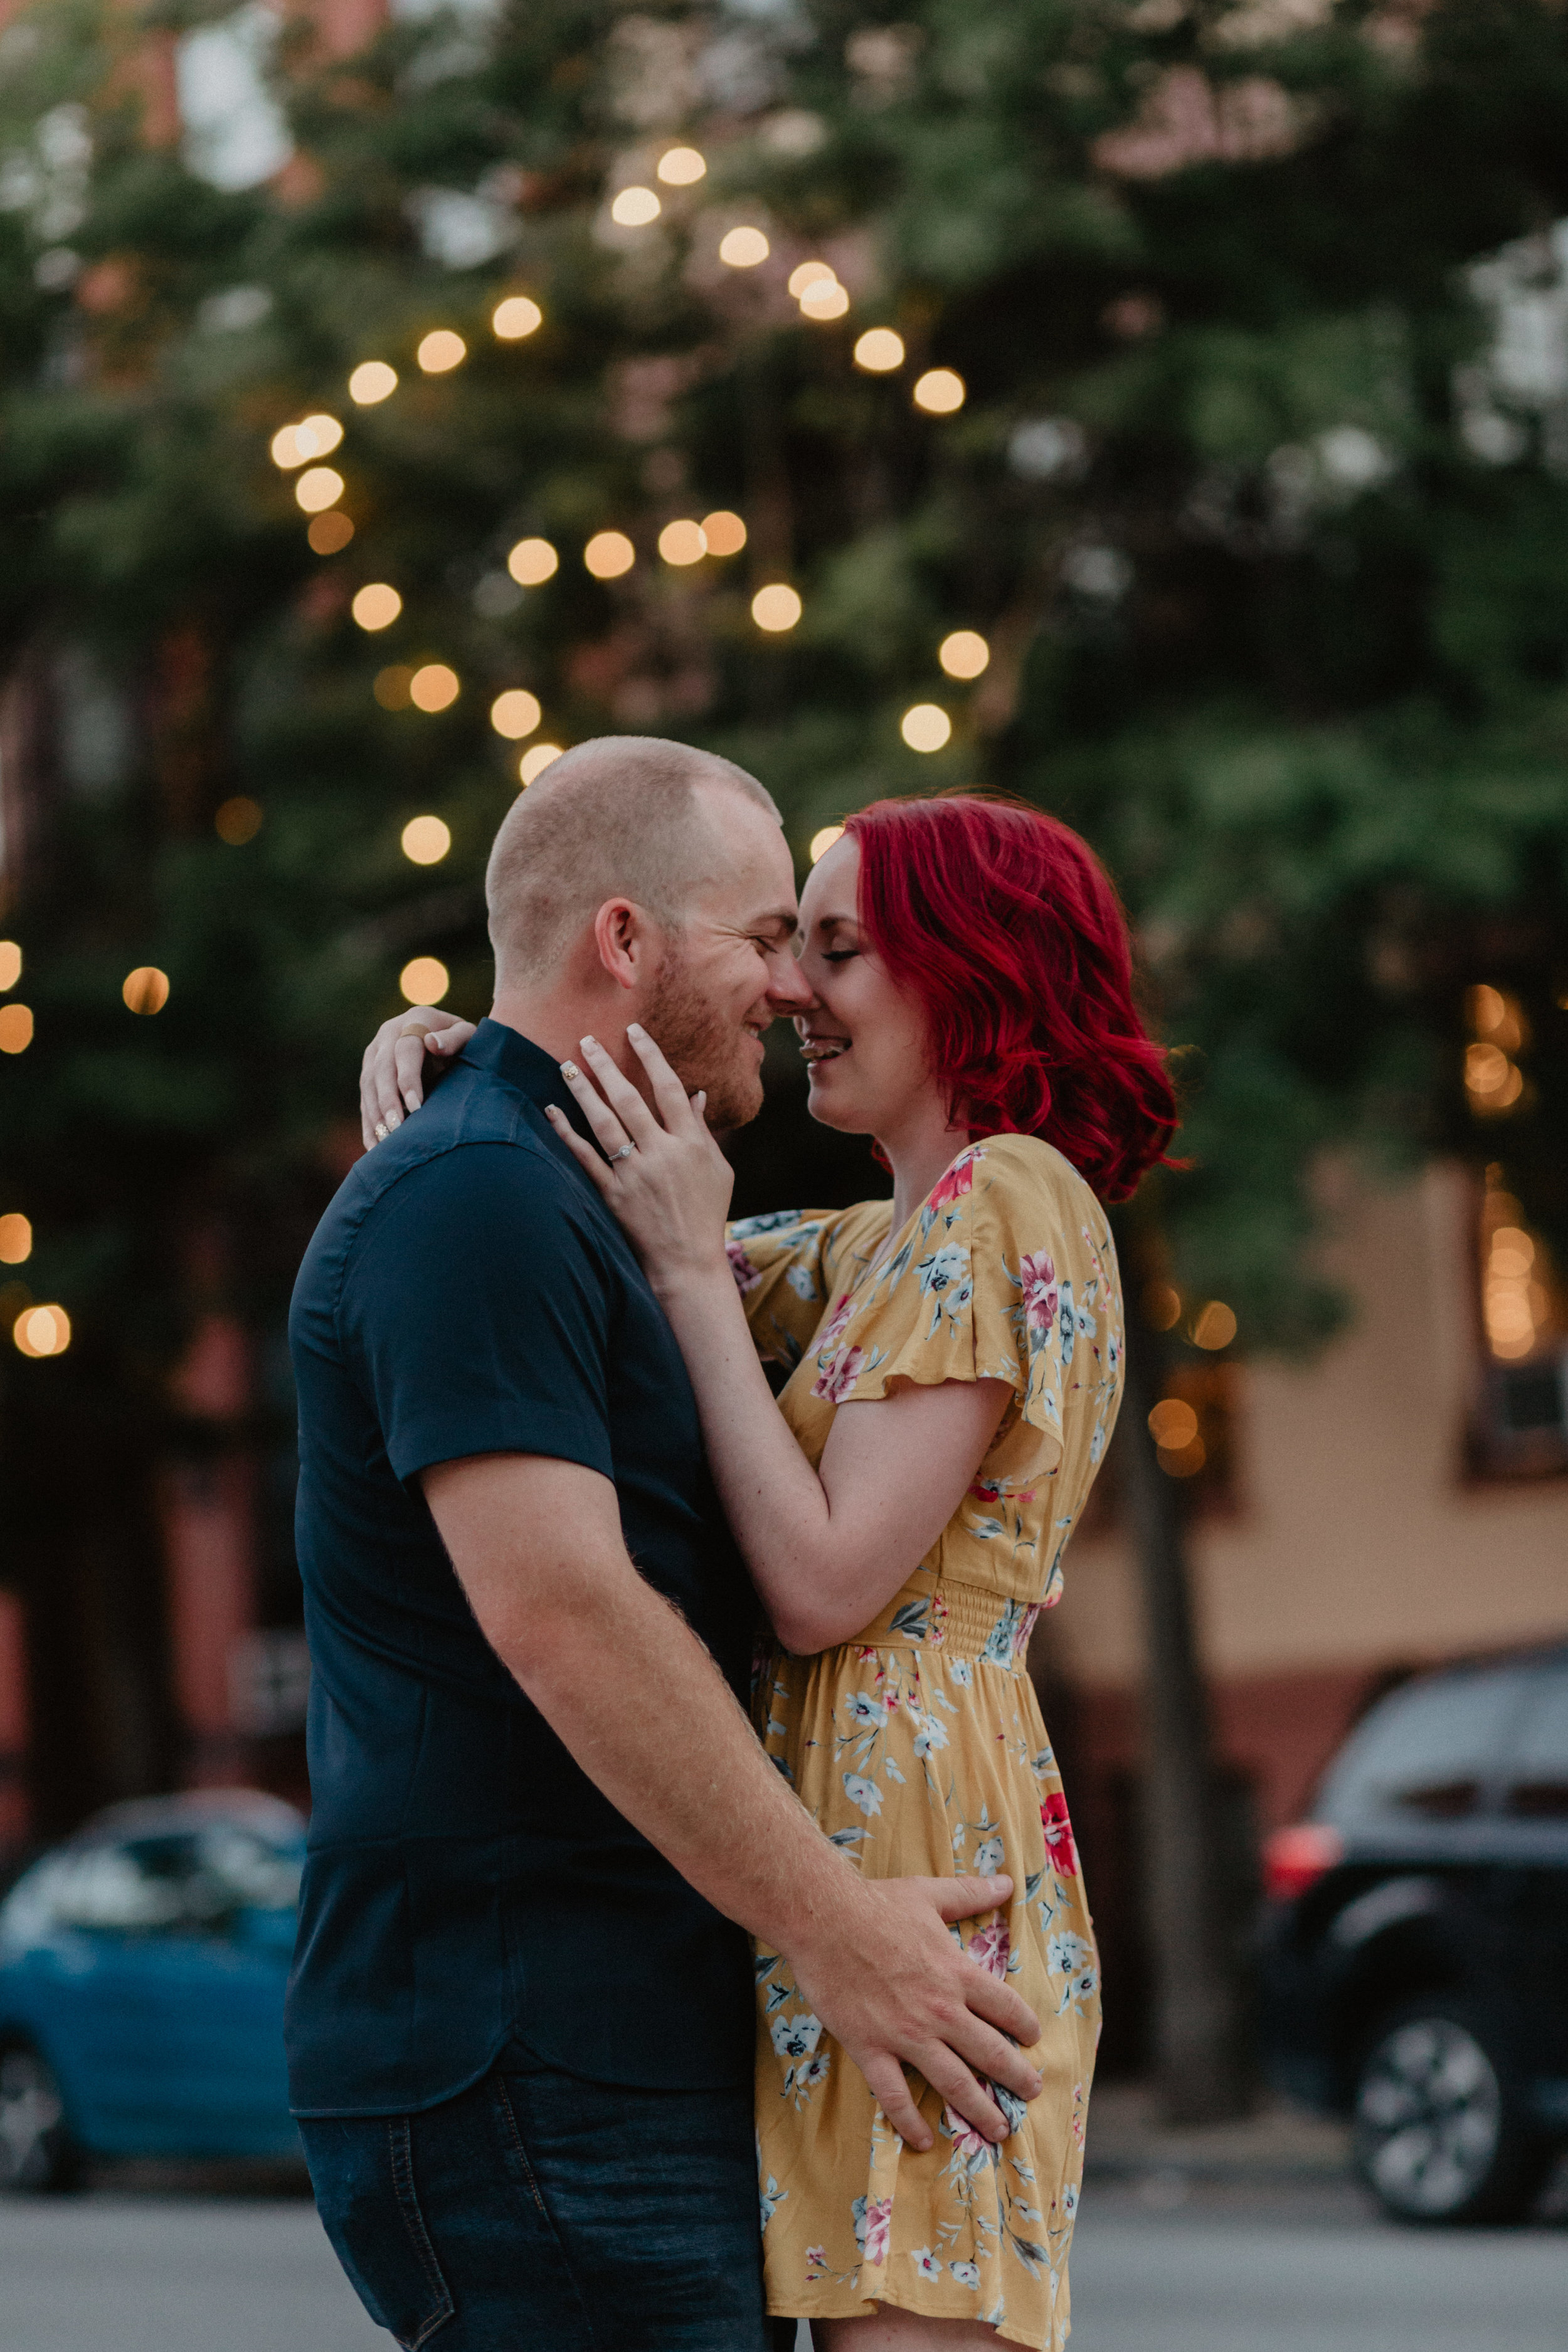 downtown-troy-engagement-session-33.jpg